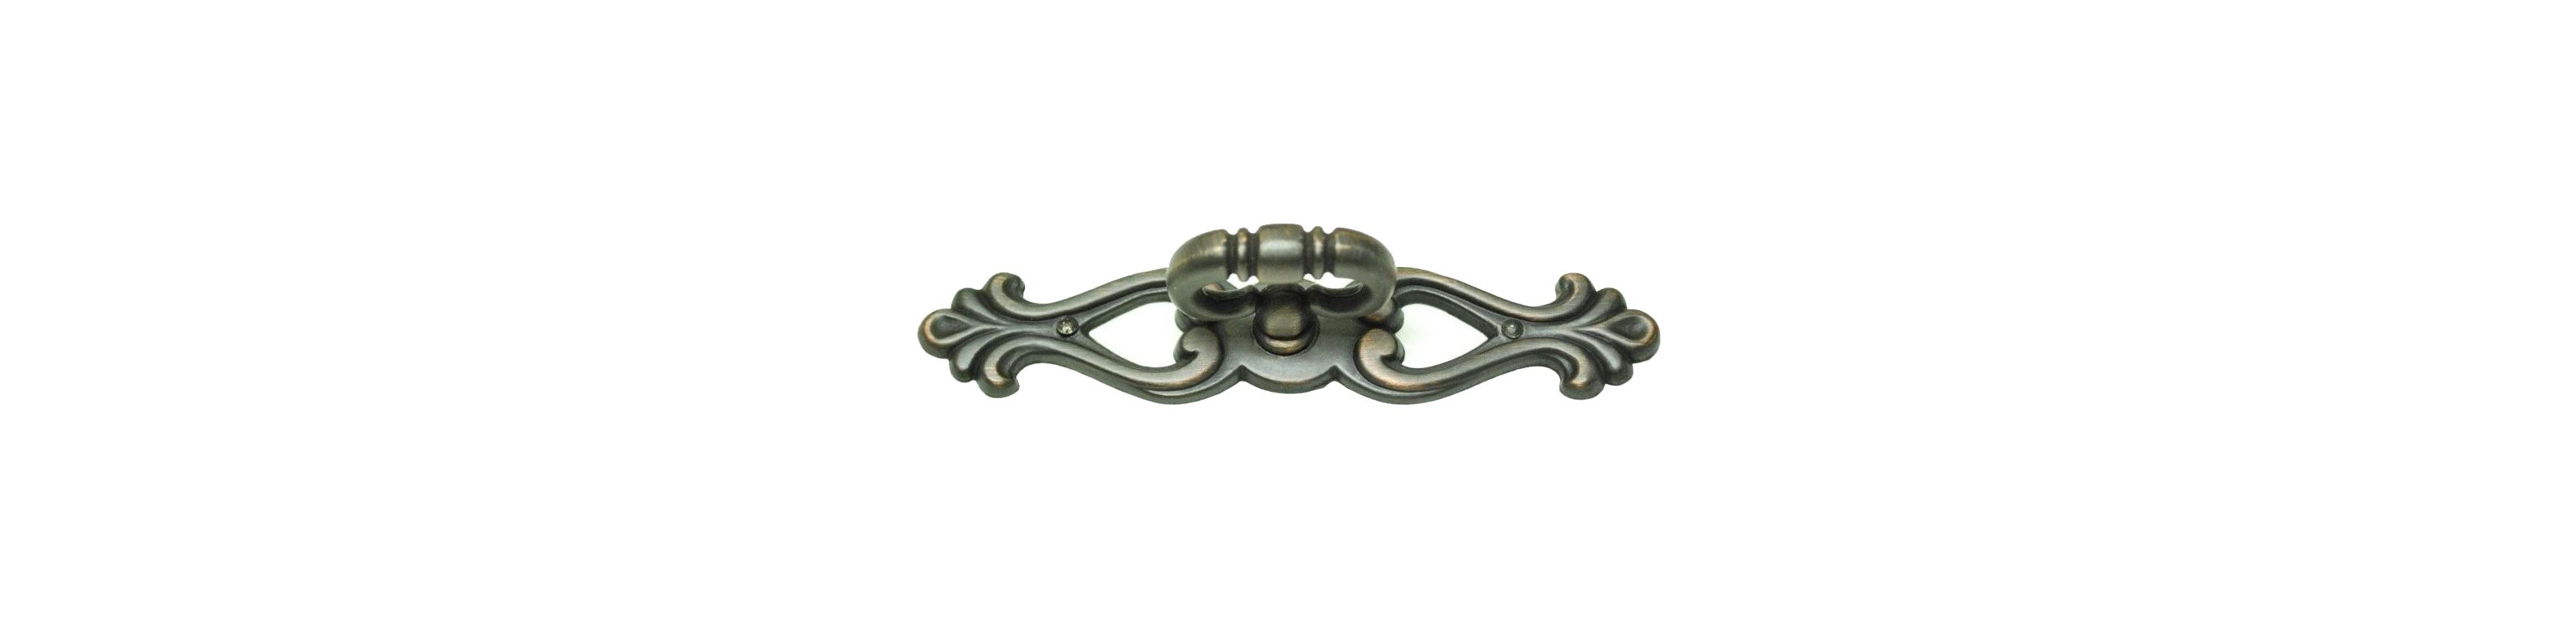 Residential Essentials 10402vb Venetian Bronze 4 1 2 Inch